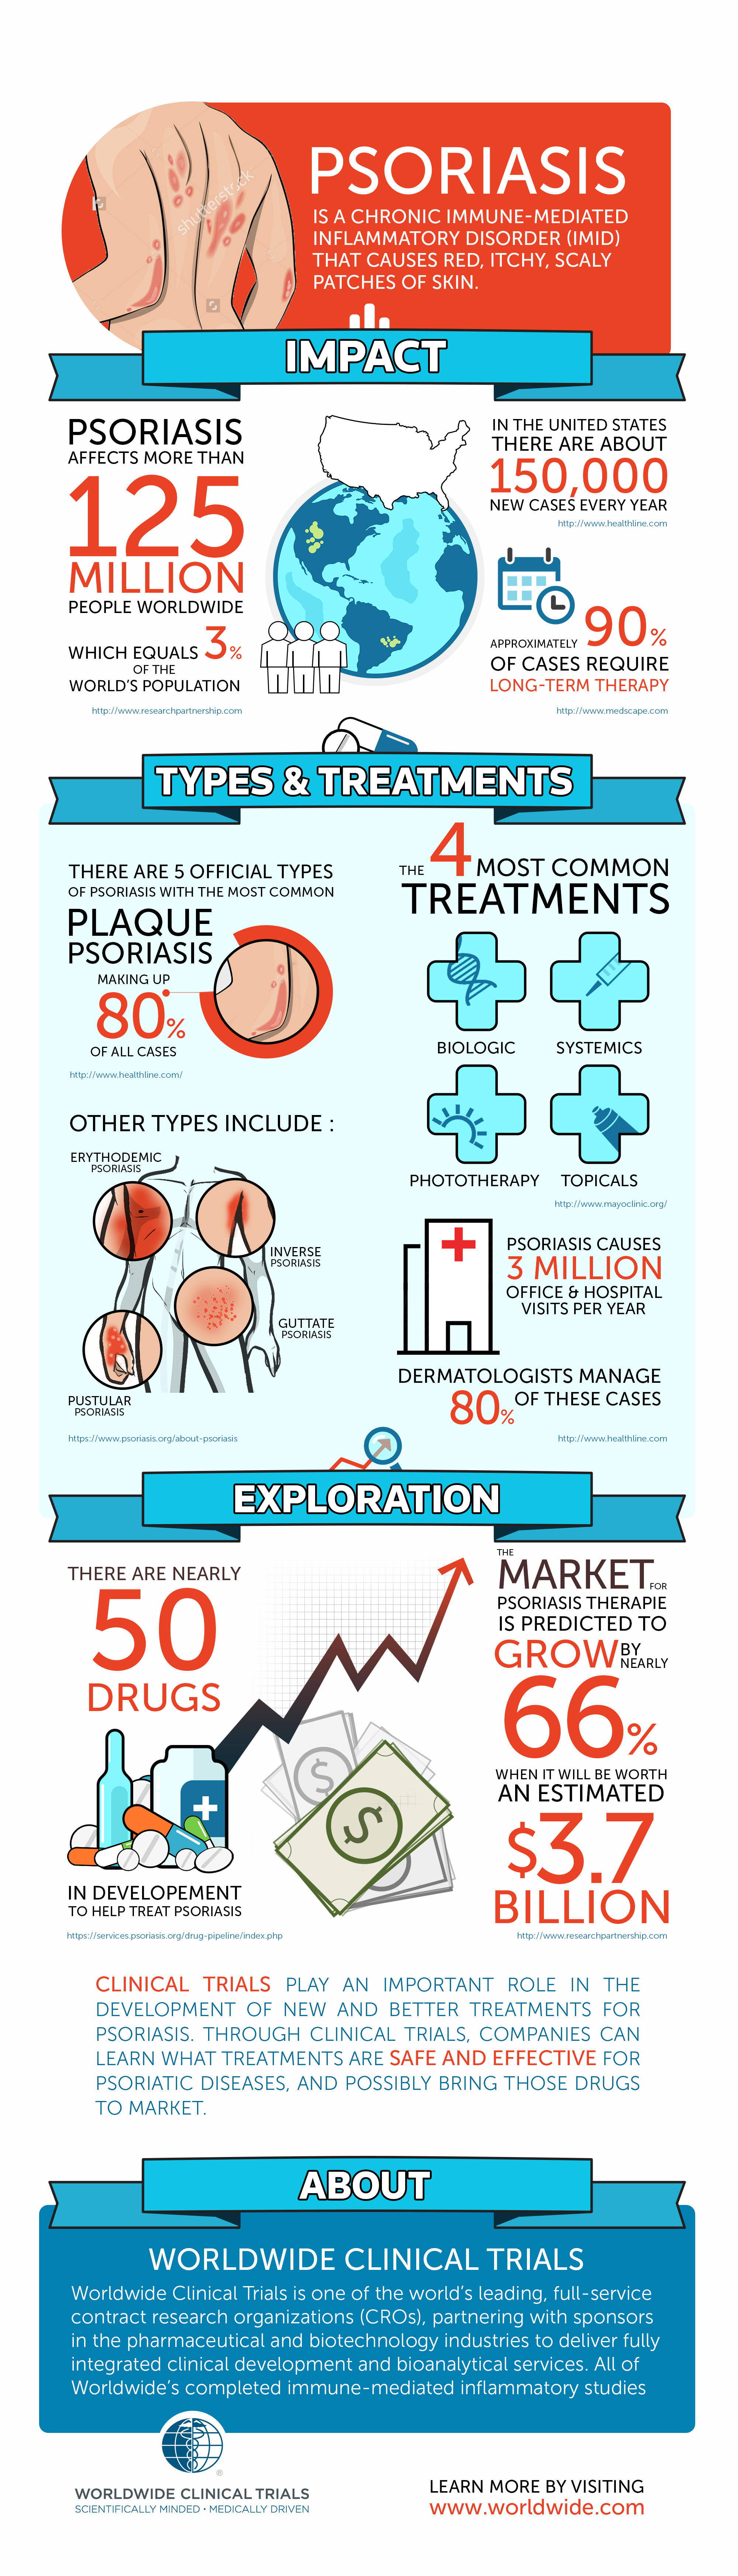 Design a compelling psoriasis awareness infographic for a renowned clinical trials company!